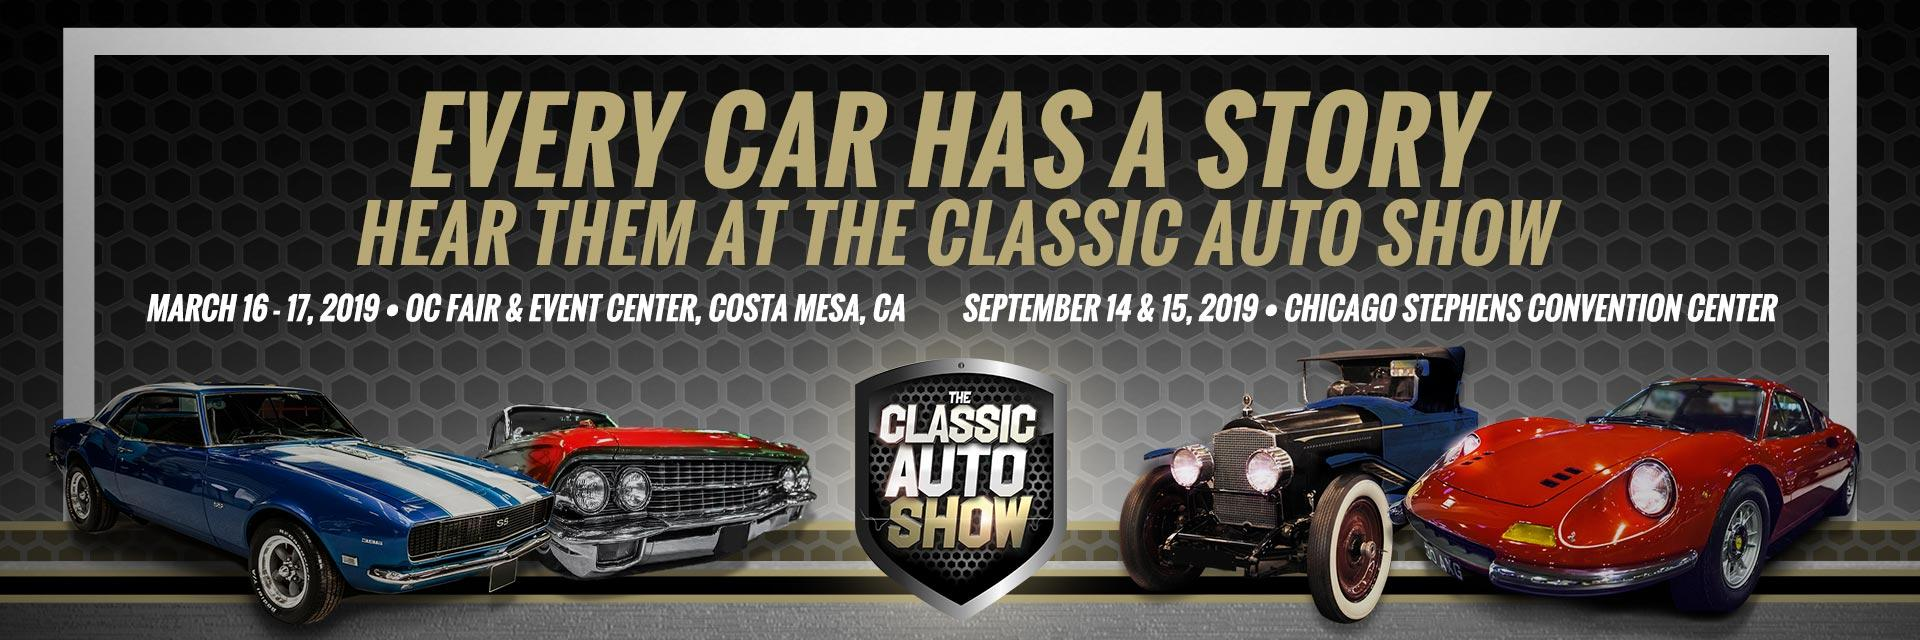 The Classic Auto Show - Mesa car show